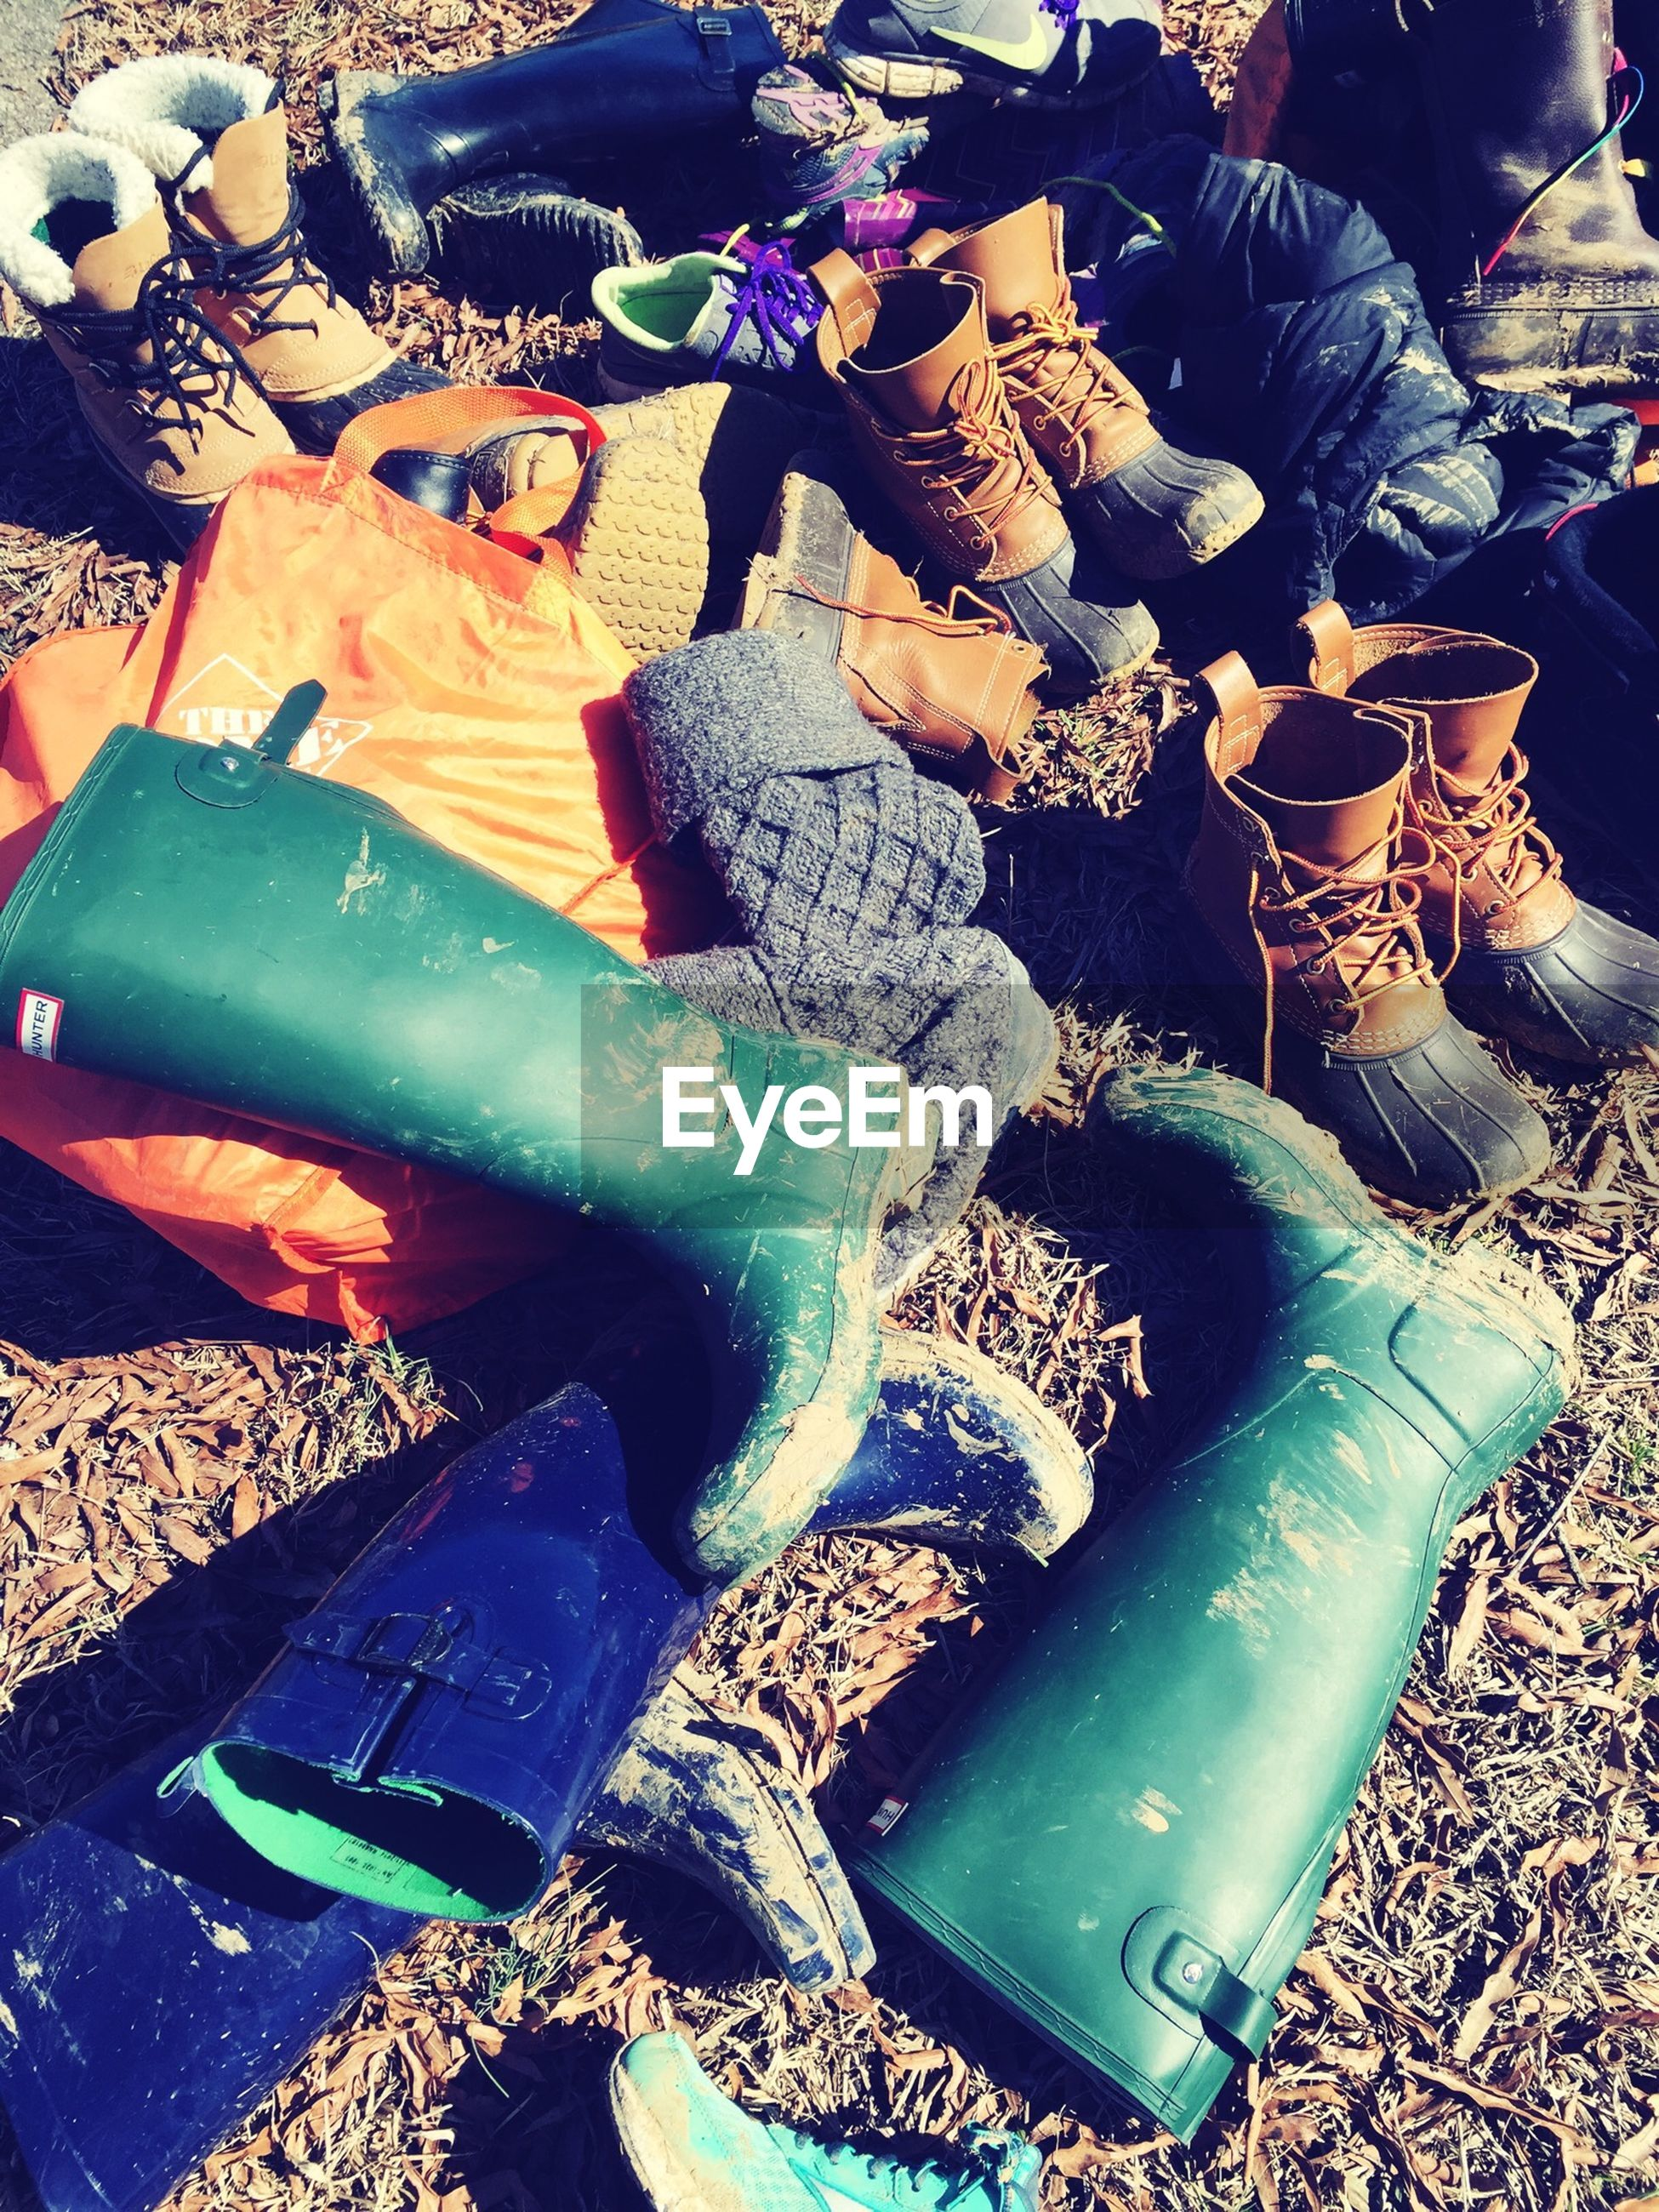 Boots scattered on ground